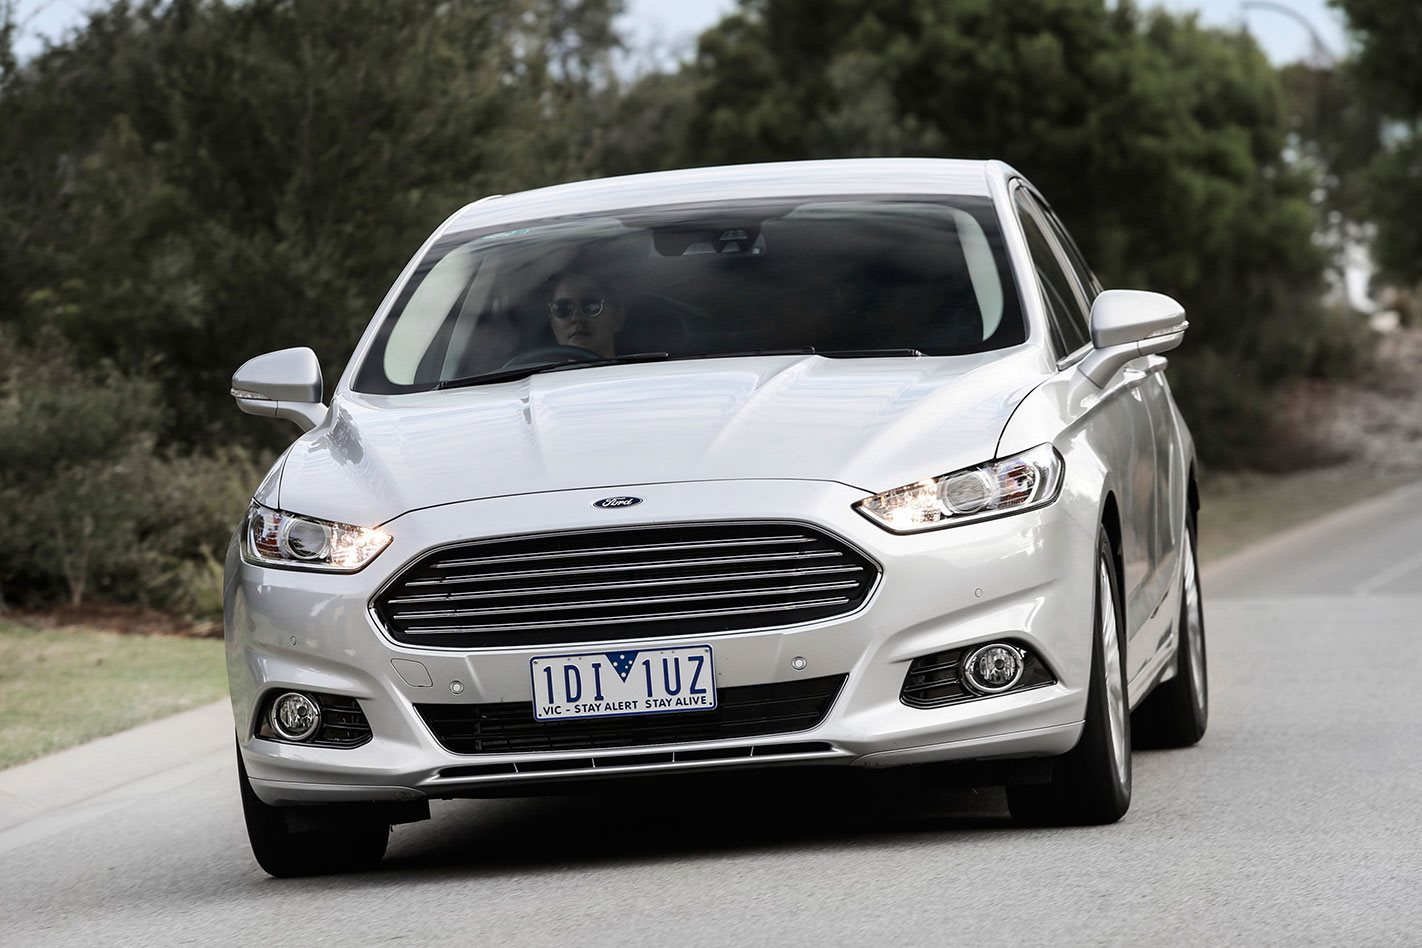 Ford Mondeo 2018 Review, Price & Features